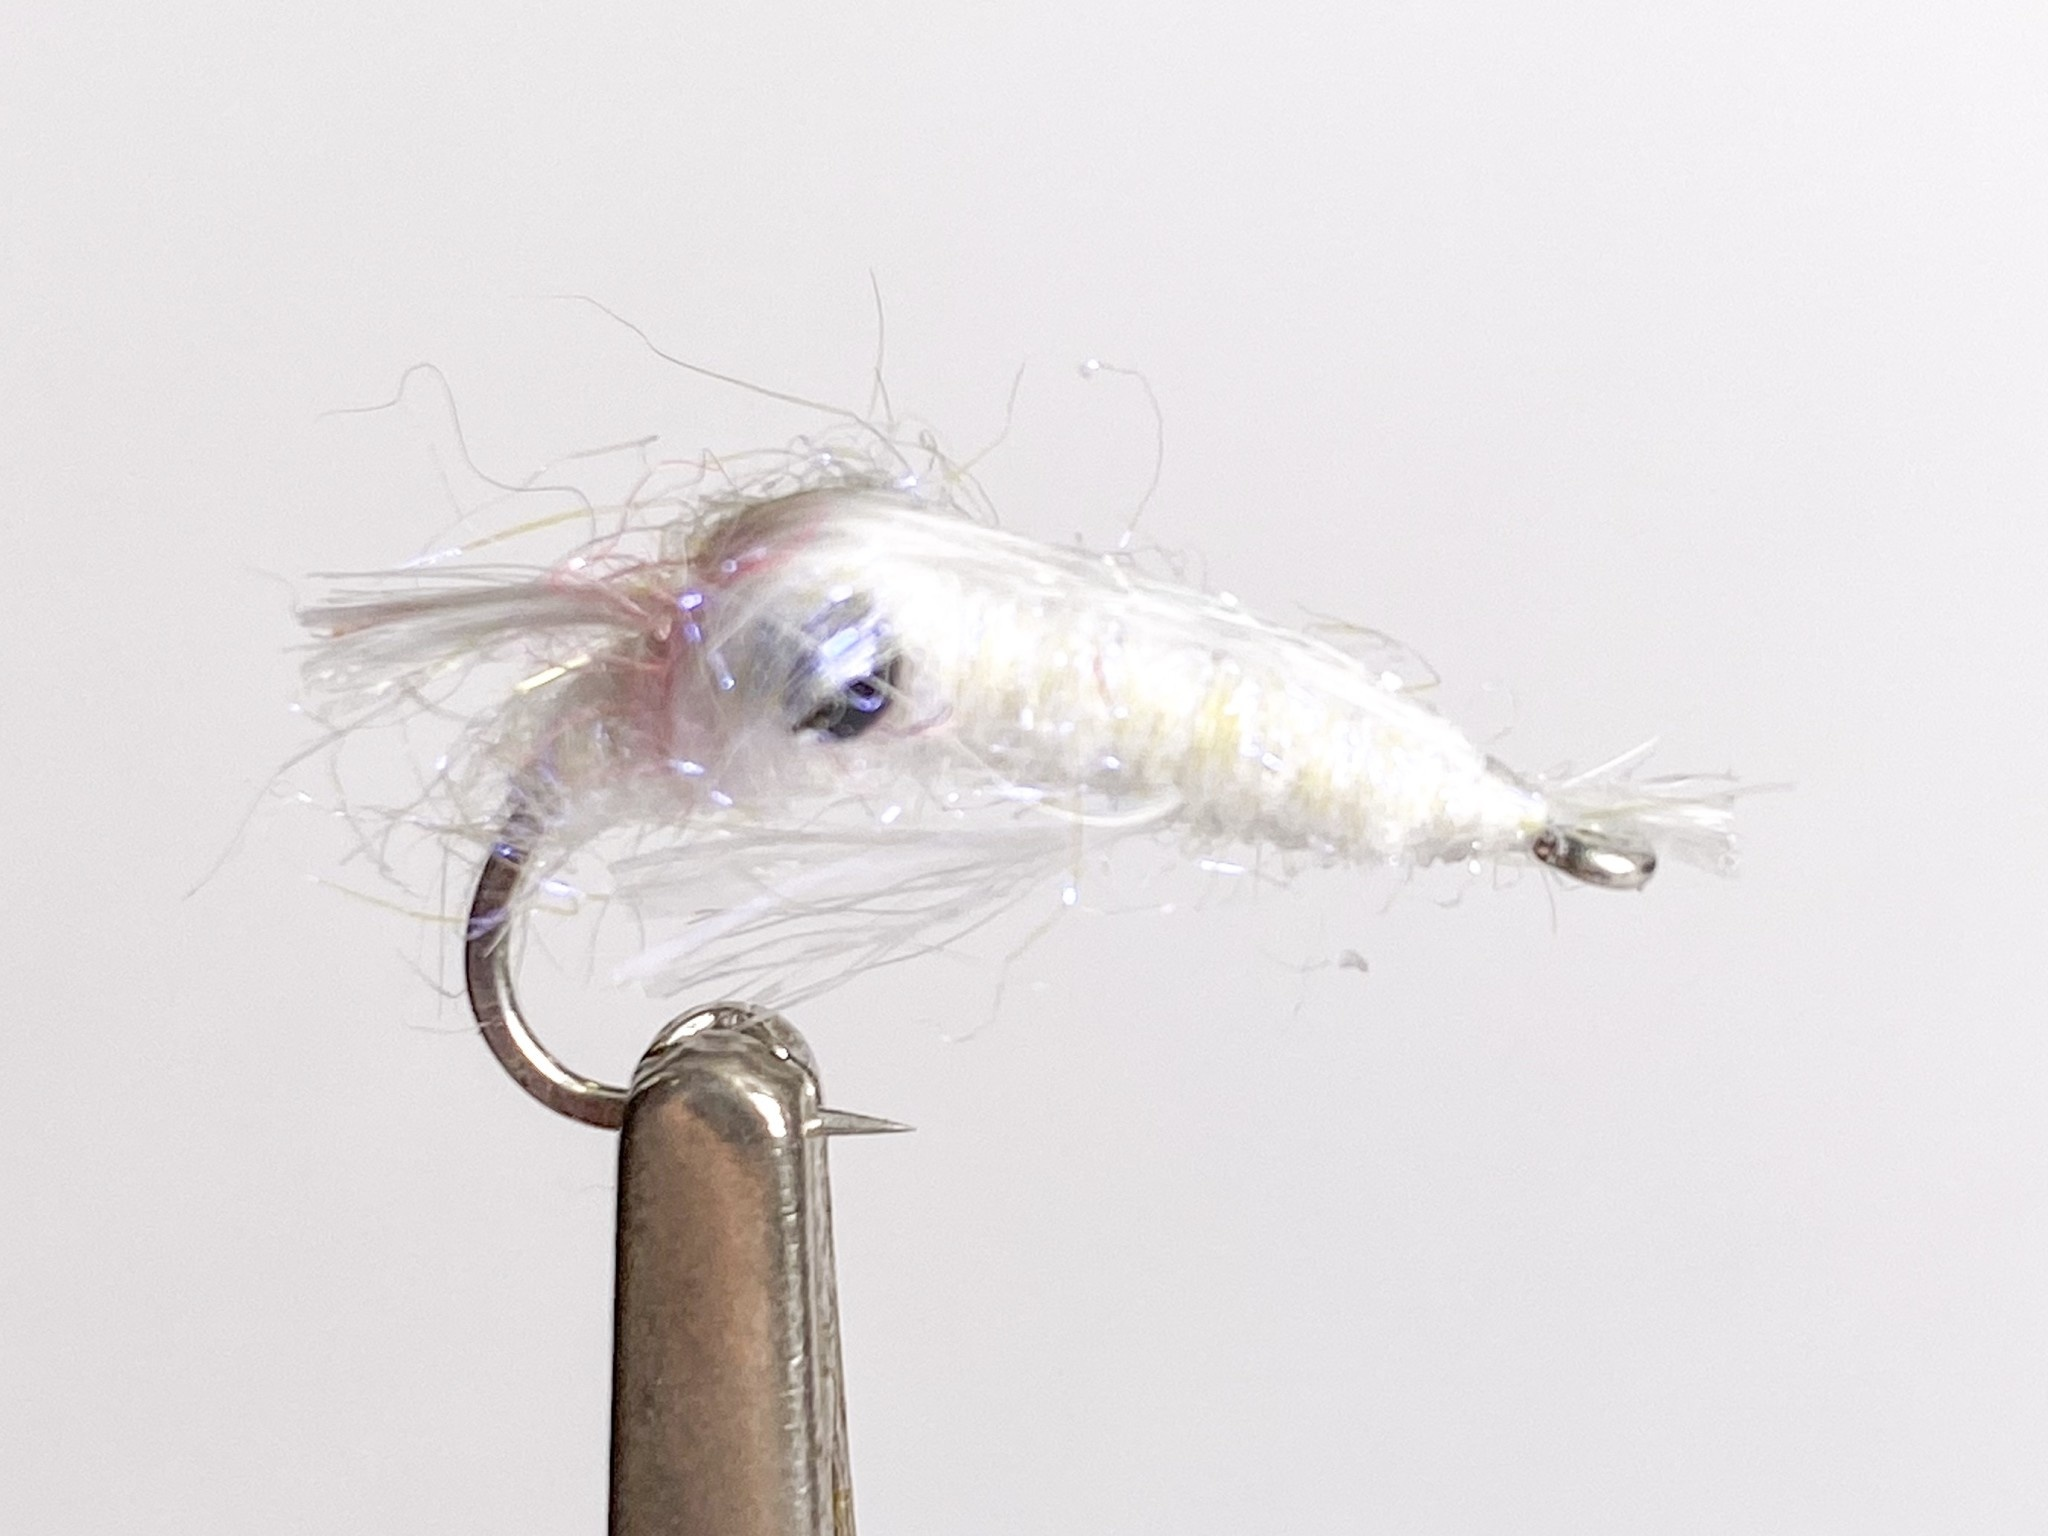 Gig Harbor Fly Shop The Crumb Euphausiid Fly size 6